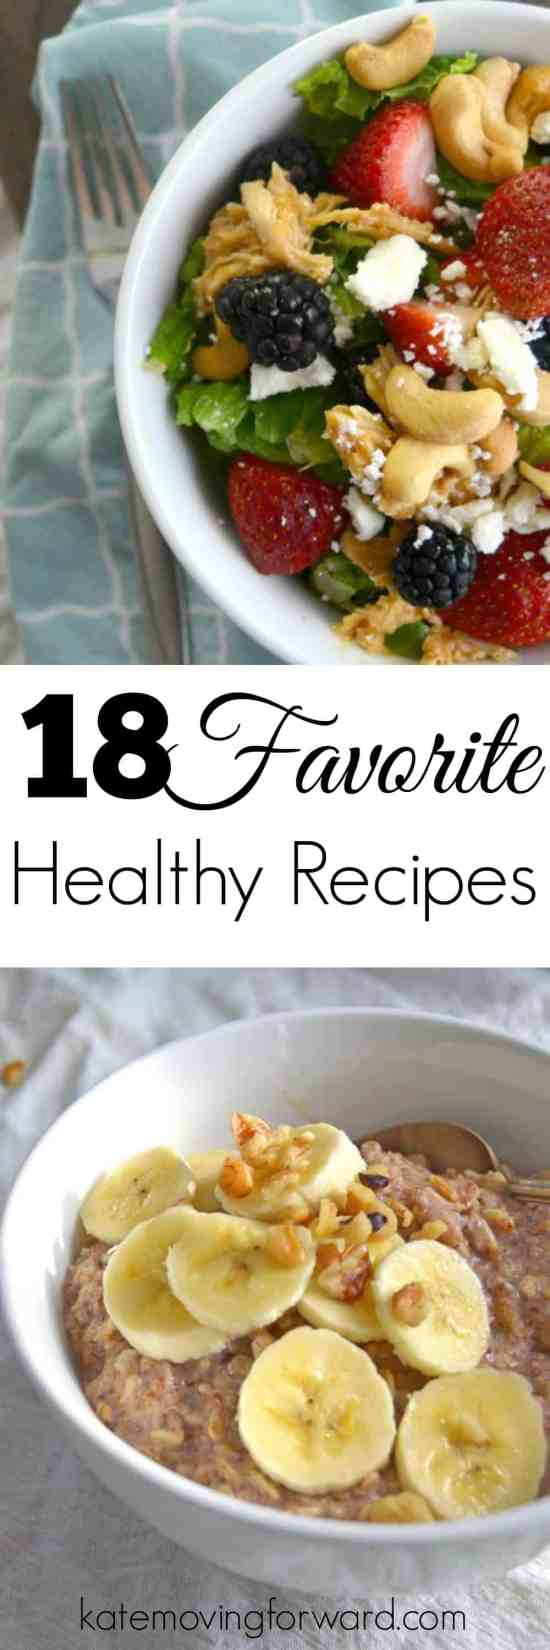 18 Favorite Healthy Recipes - Use these healthy breakfast, lunches, dinners, and snacks to kick start your clean eating this year!